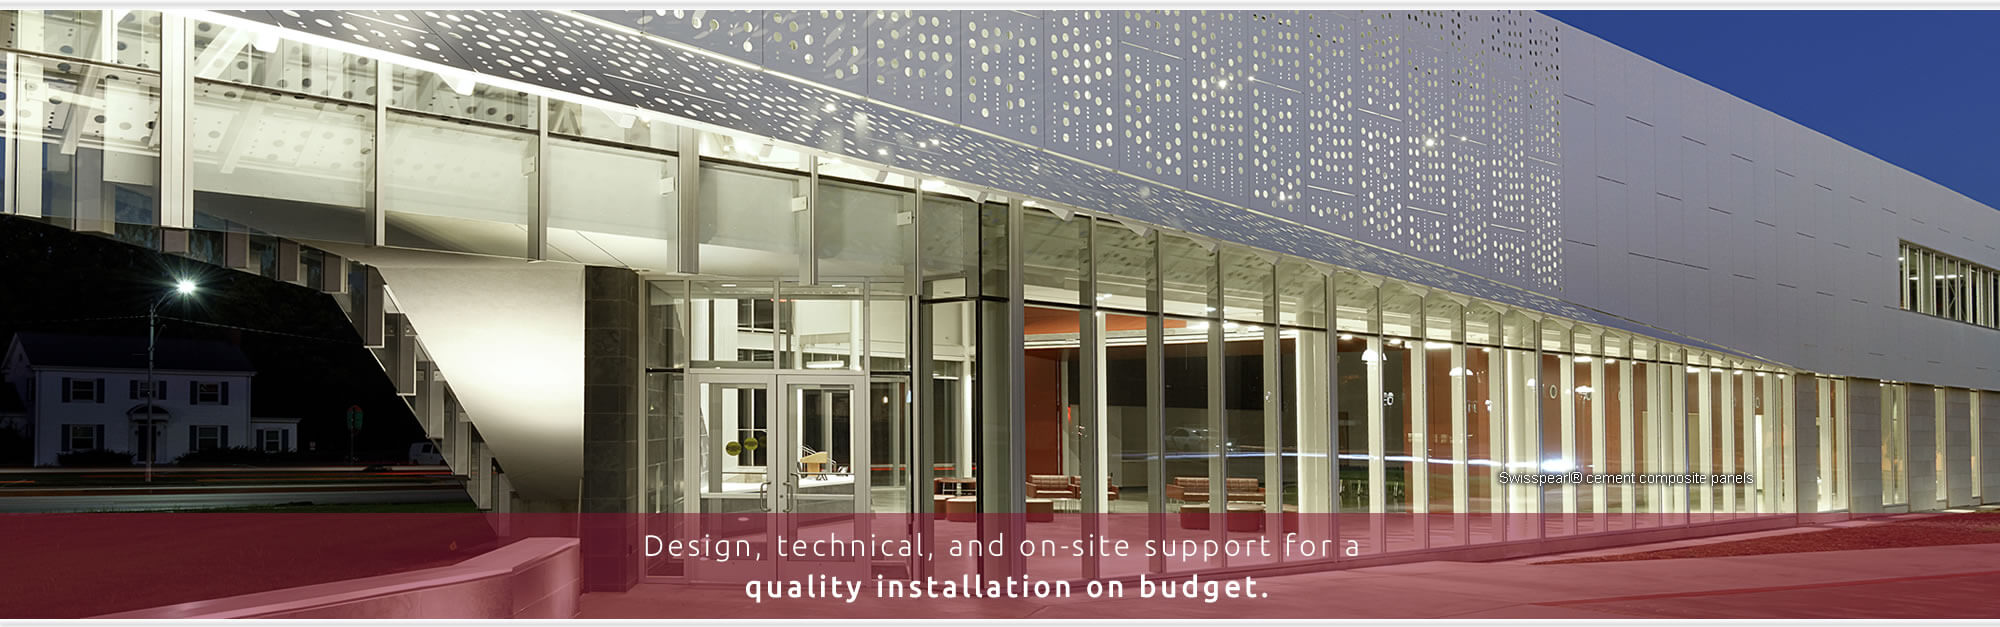 Exterior Building Panel Systems Swisspearl Citadel Architectural Products Element